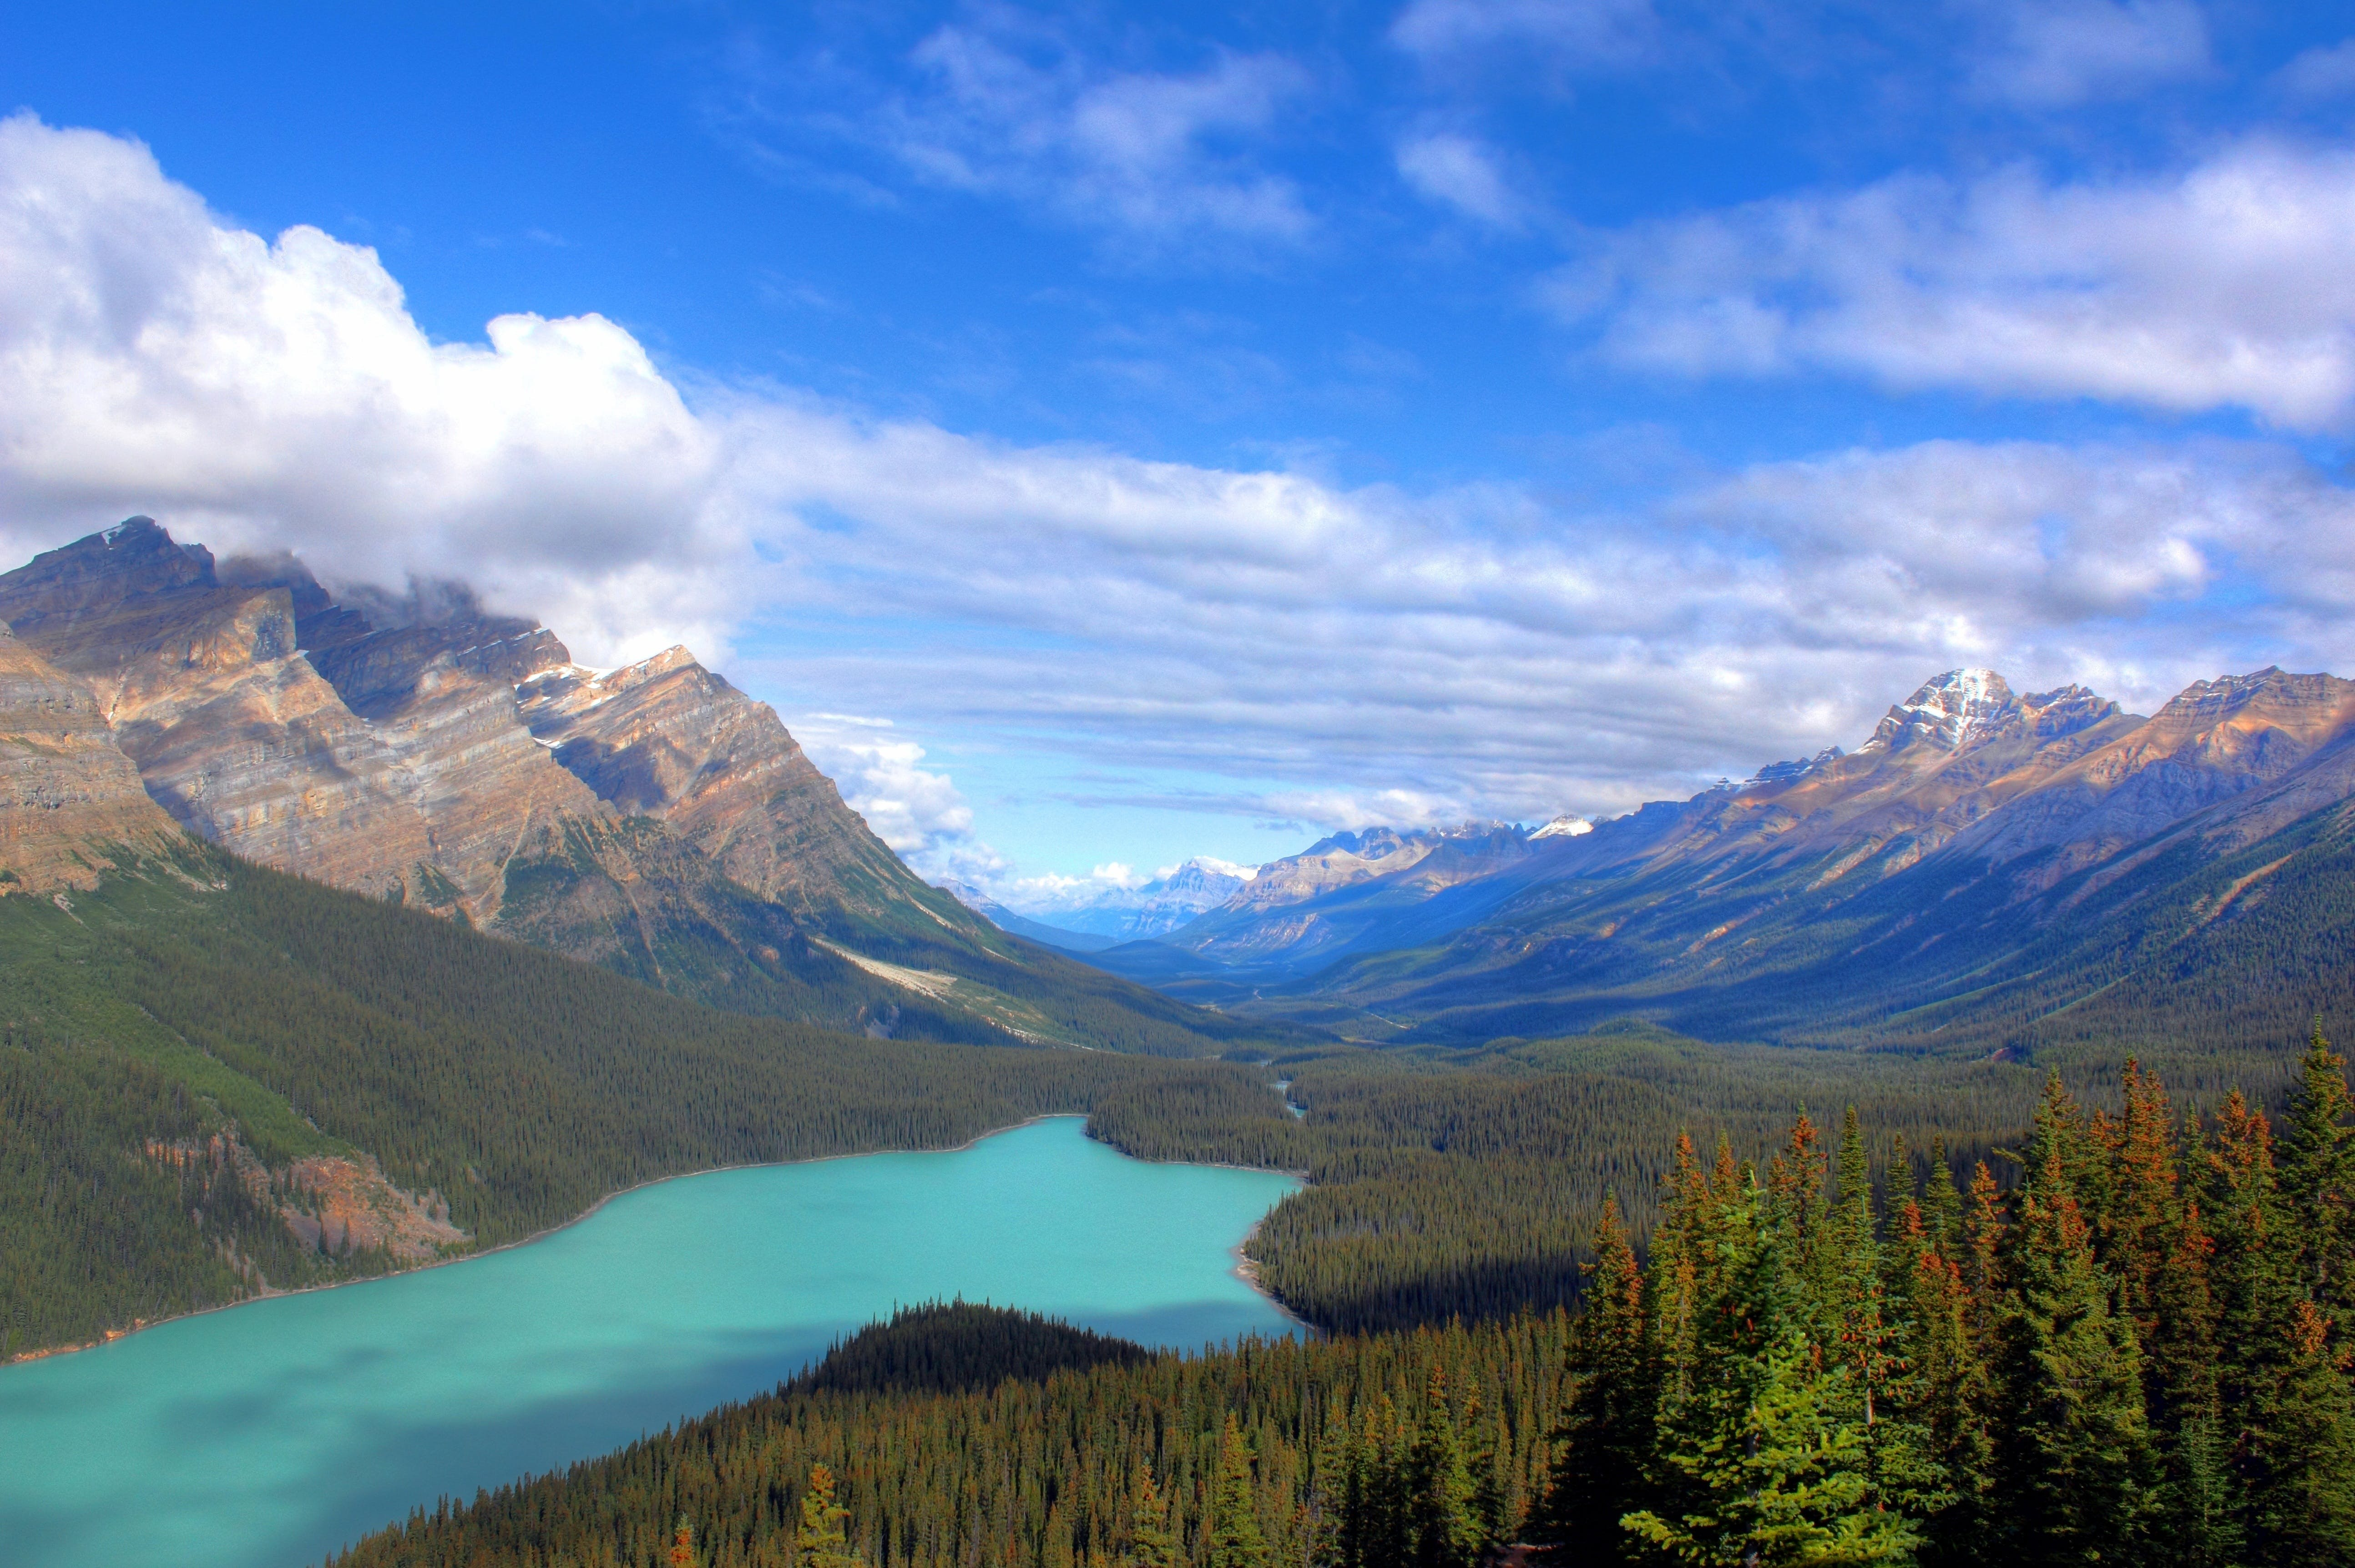 Blue Lake Near Mountains Under Blue and White Sunny Cloudy Sky